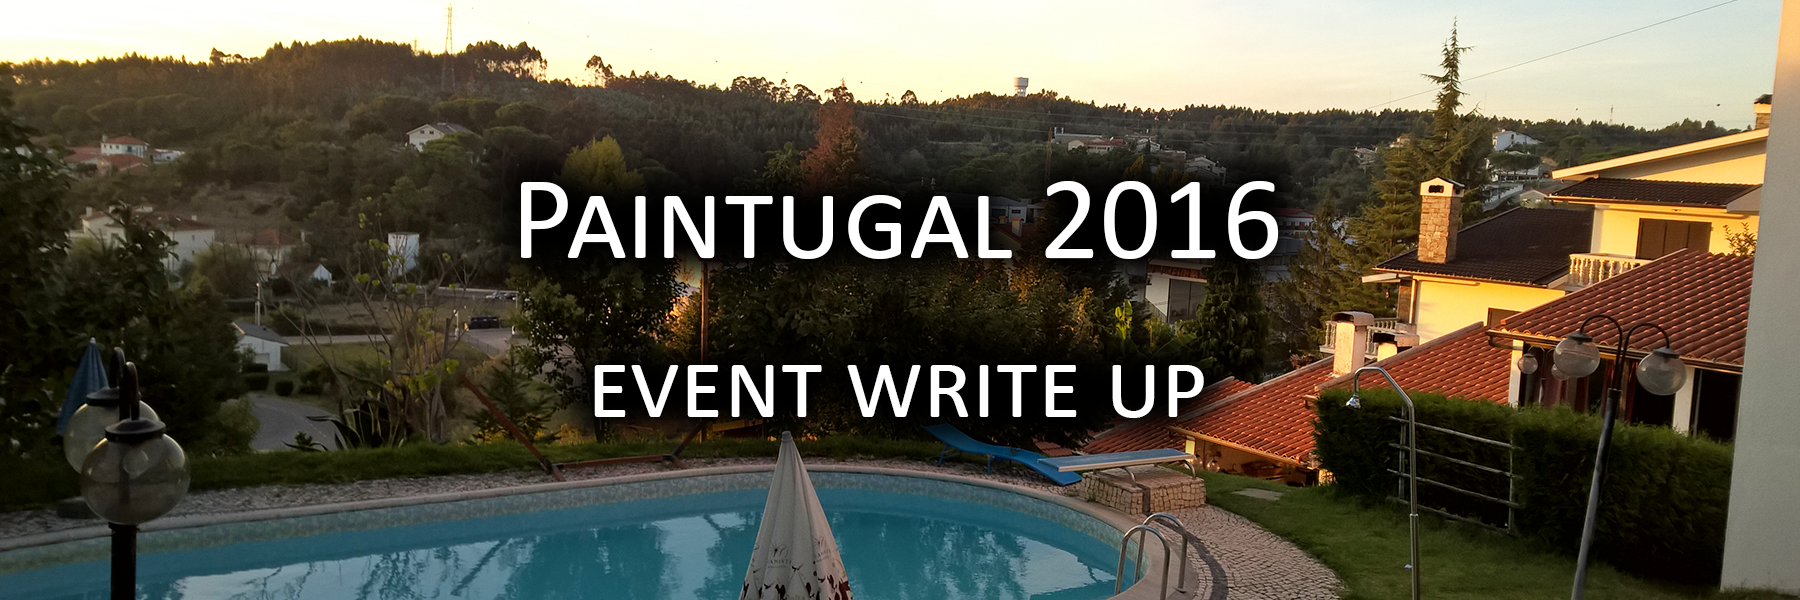 Paintugal 2016 Event Writeup